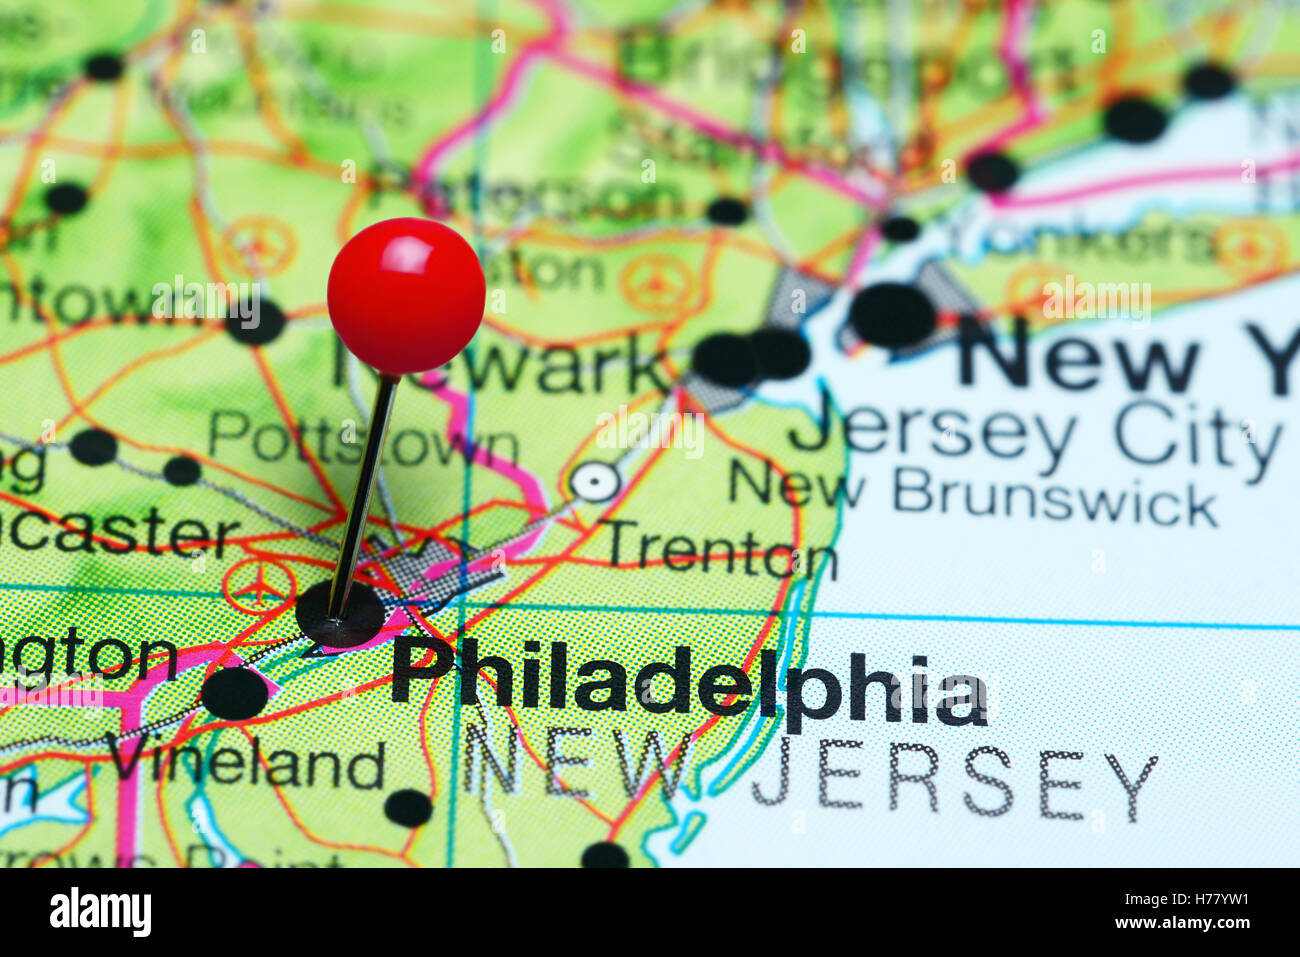 philadelphia in map of usa Philadelphia Pinned On A Map Of Pennsylvania Usa Stock Photo Alamy philadelphia in map of usa